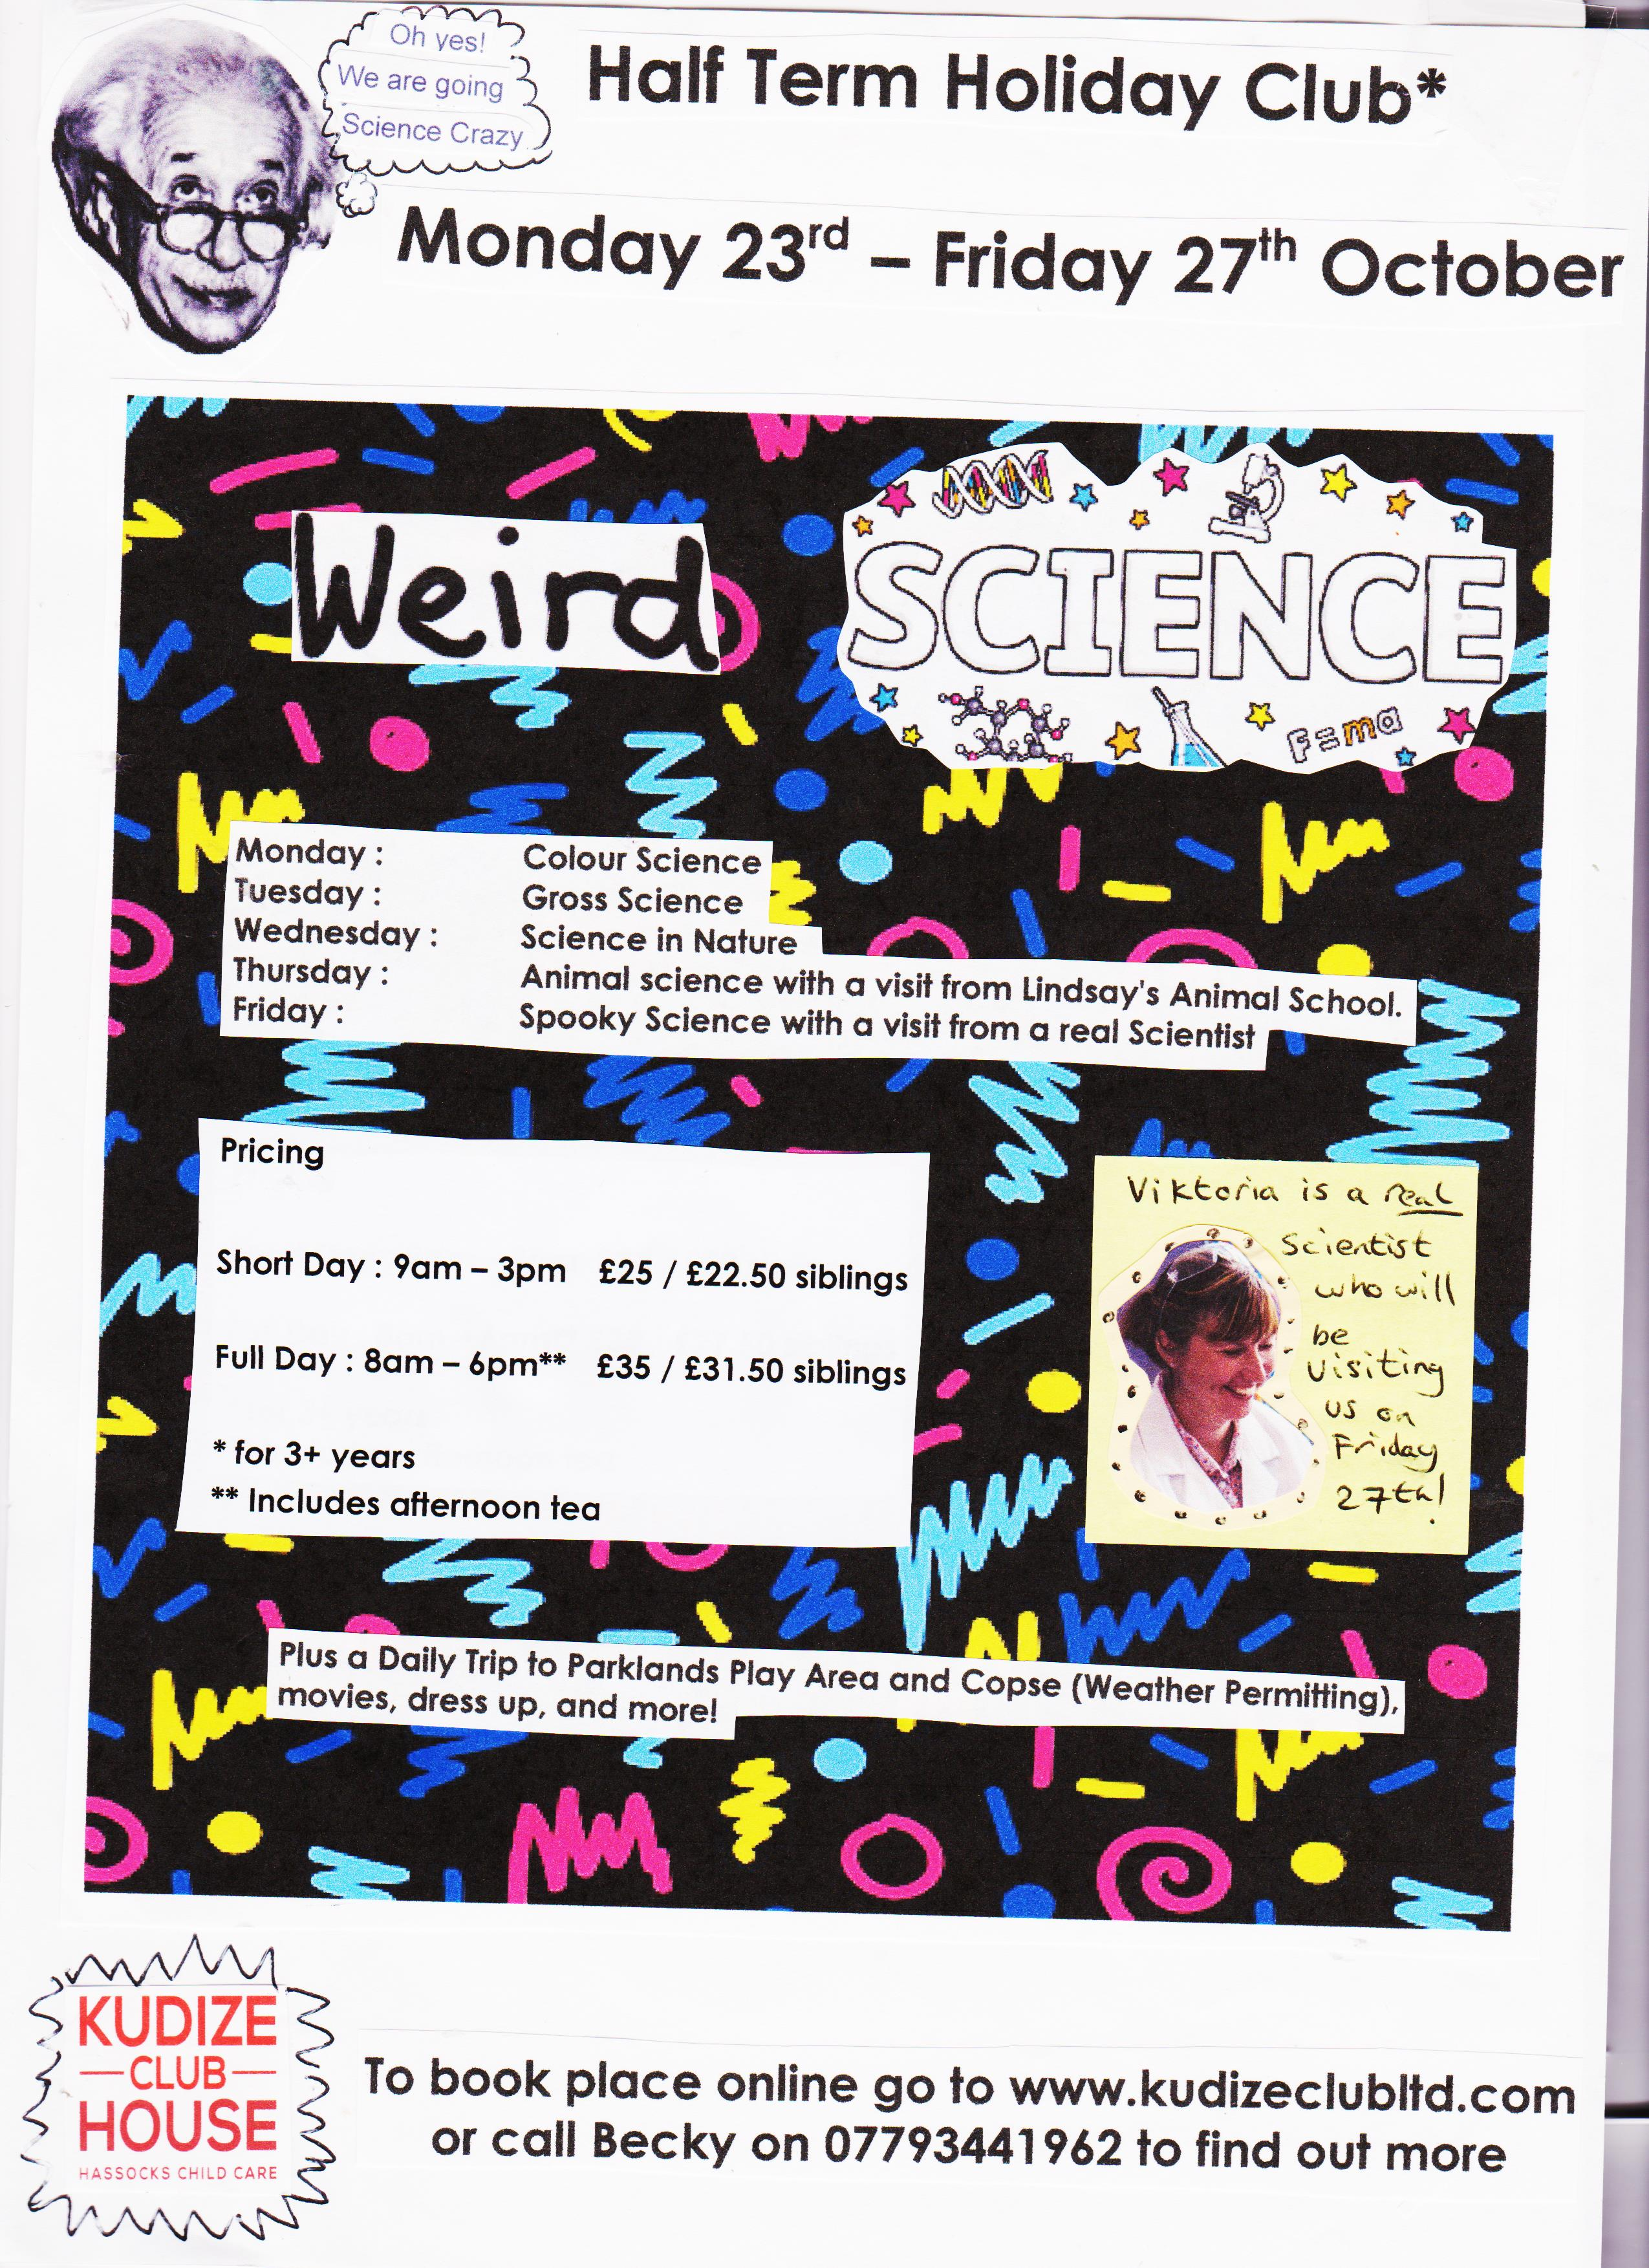 October Half Term Holiday Club Weird Science 2017